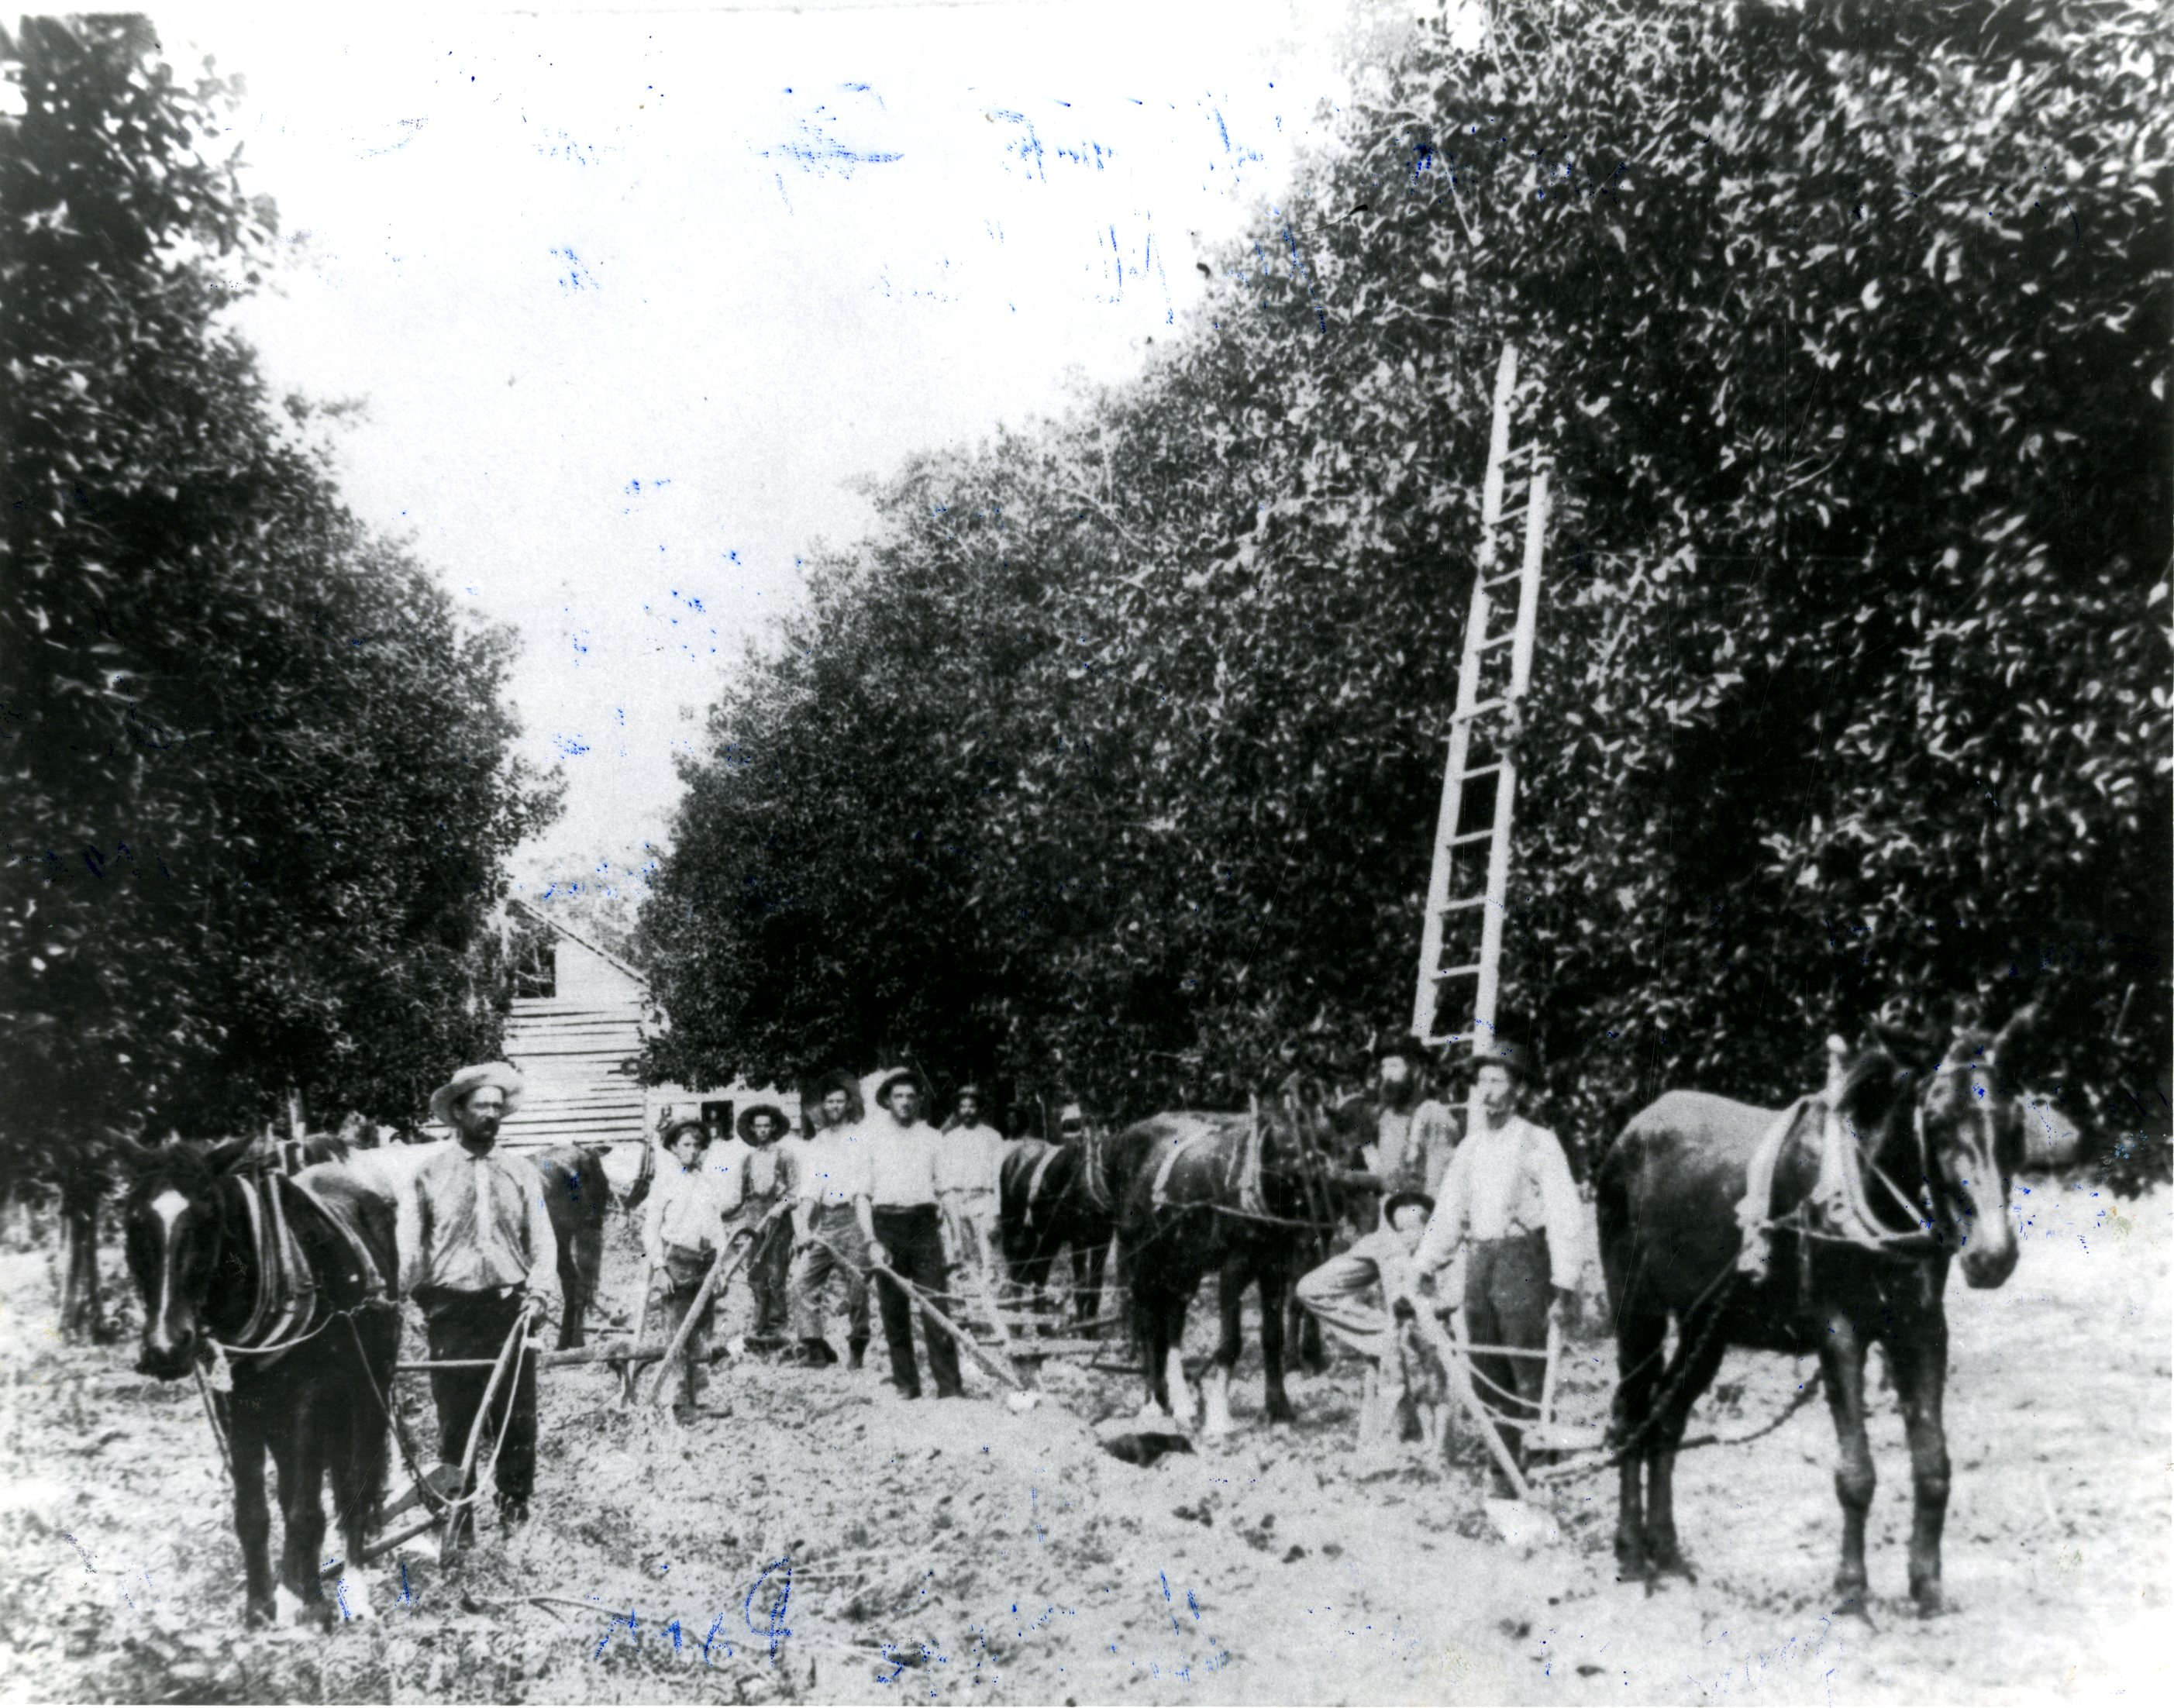 James P. McMullen and workers in citrus groves, Clearwater, Florida, circa 1895.